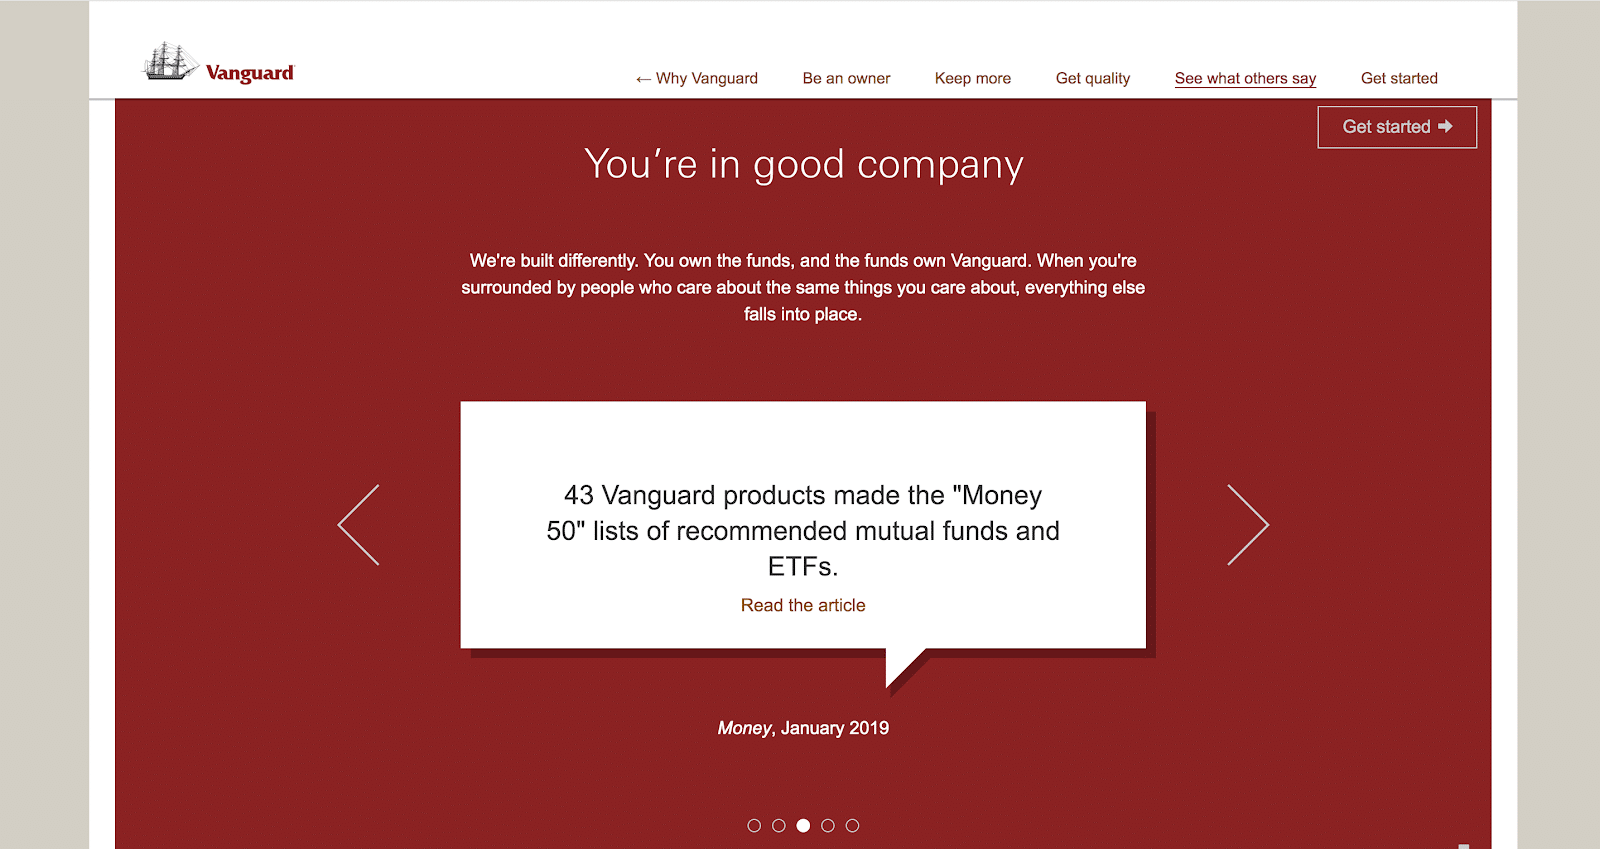 vanguard quote about how great their products are